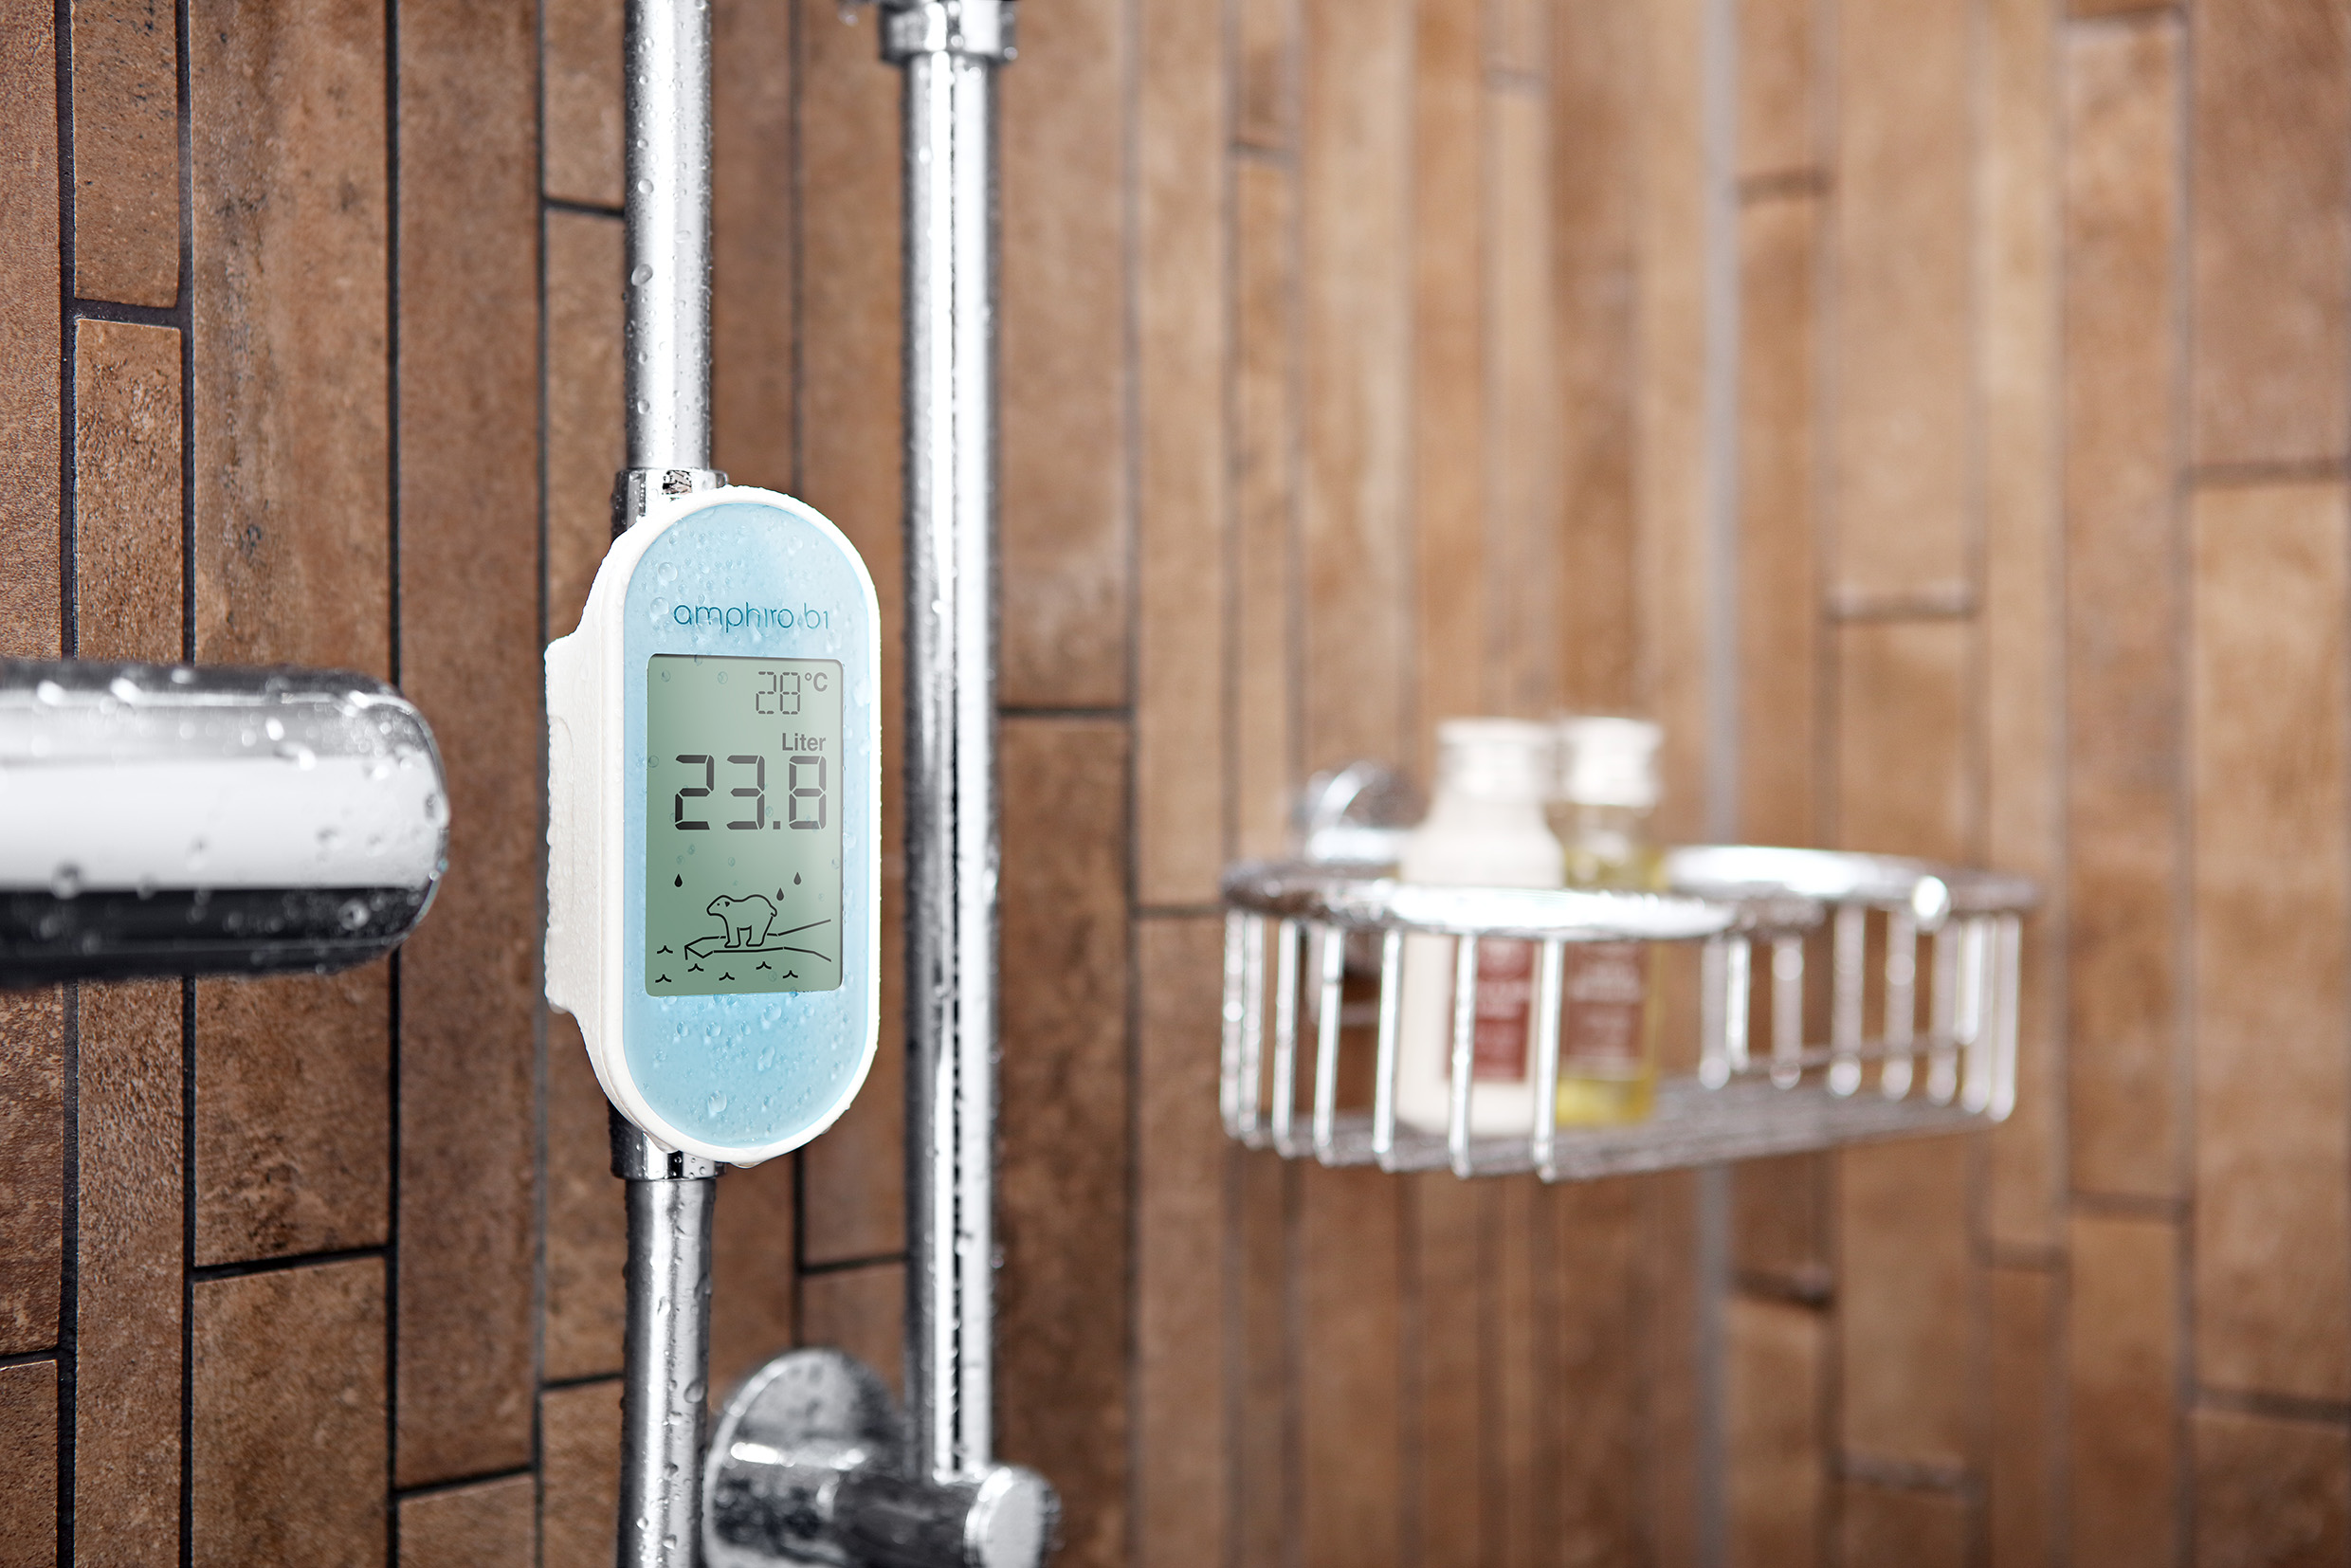 Image of smart shower monitor indicating water temperature and consumption